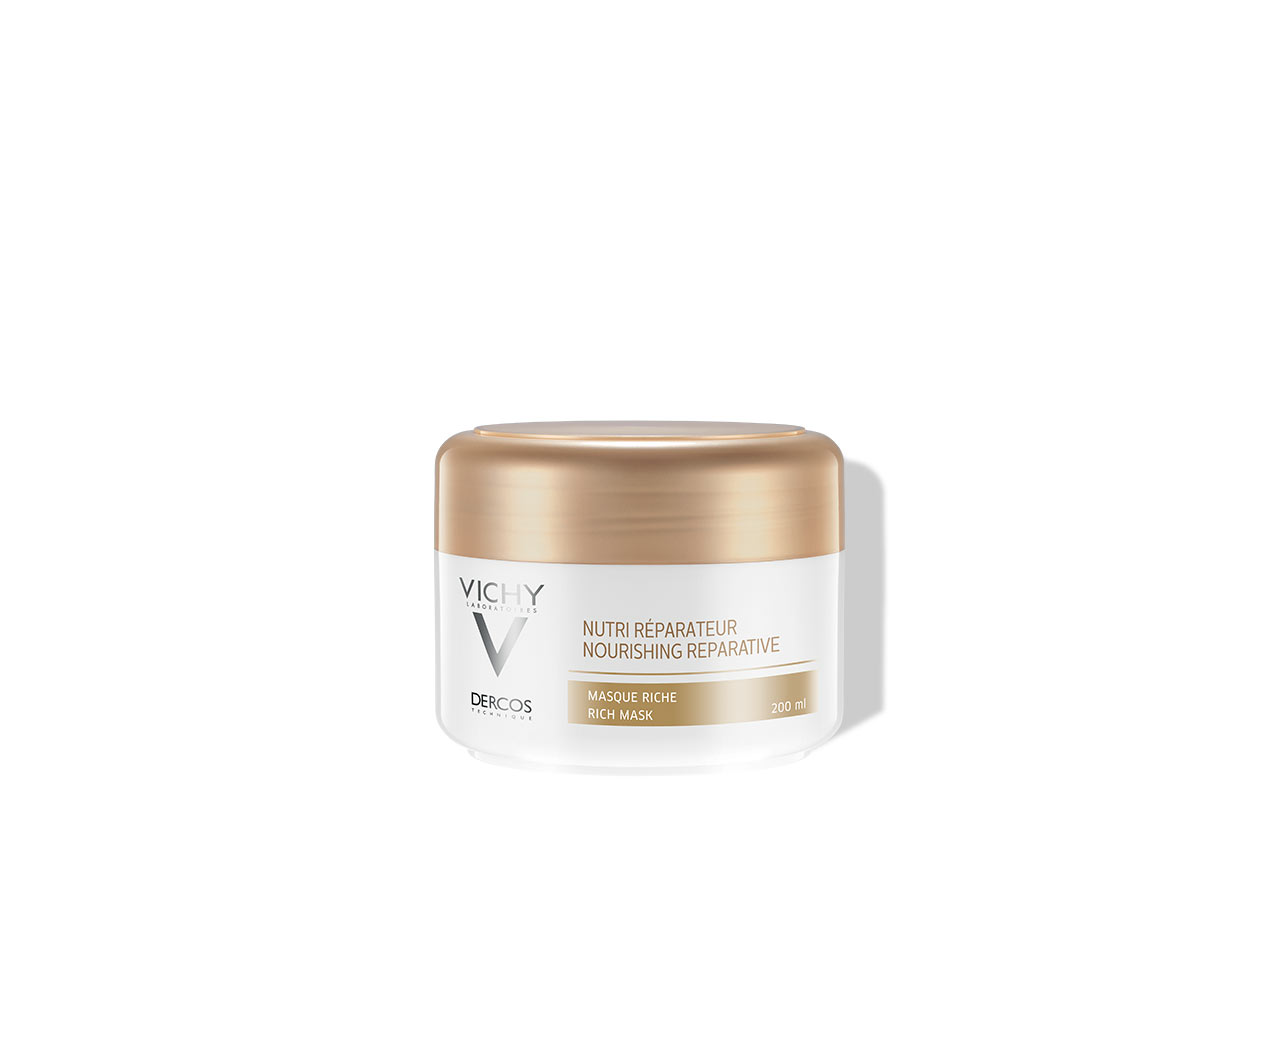 Nourishing & Reparative Mask